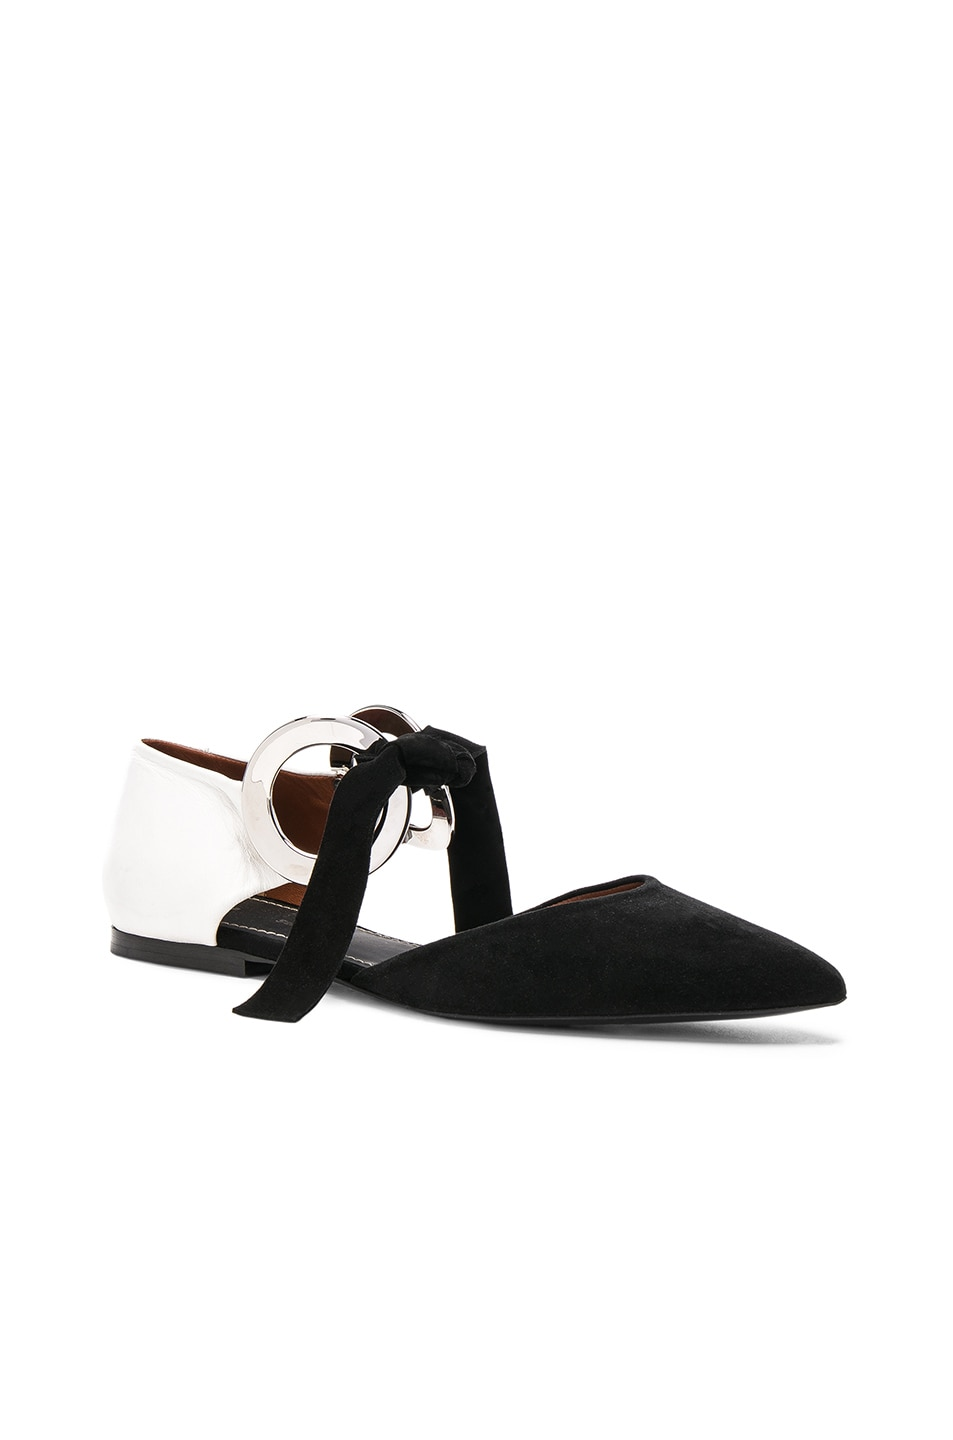 Image 2 of Proenza Schouler Suede Ankle Tie Flats in Black & White